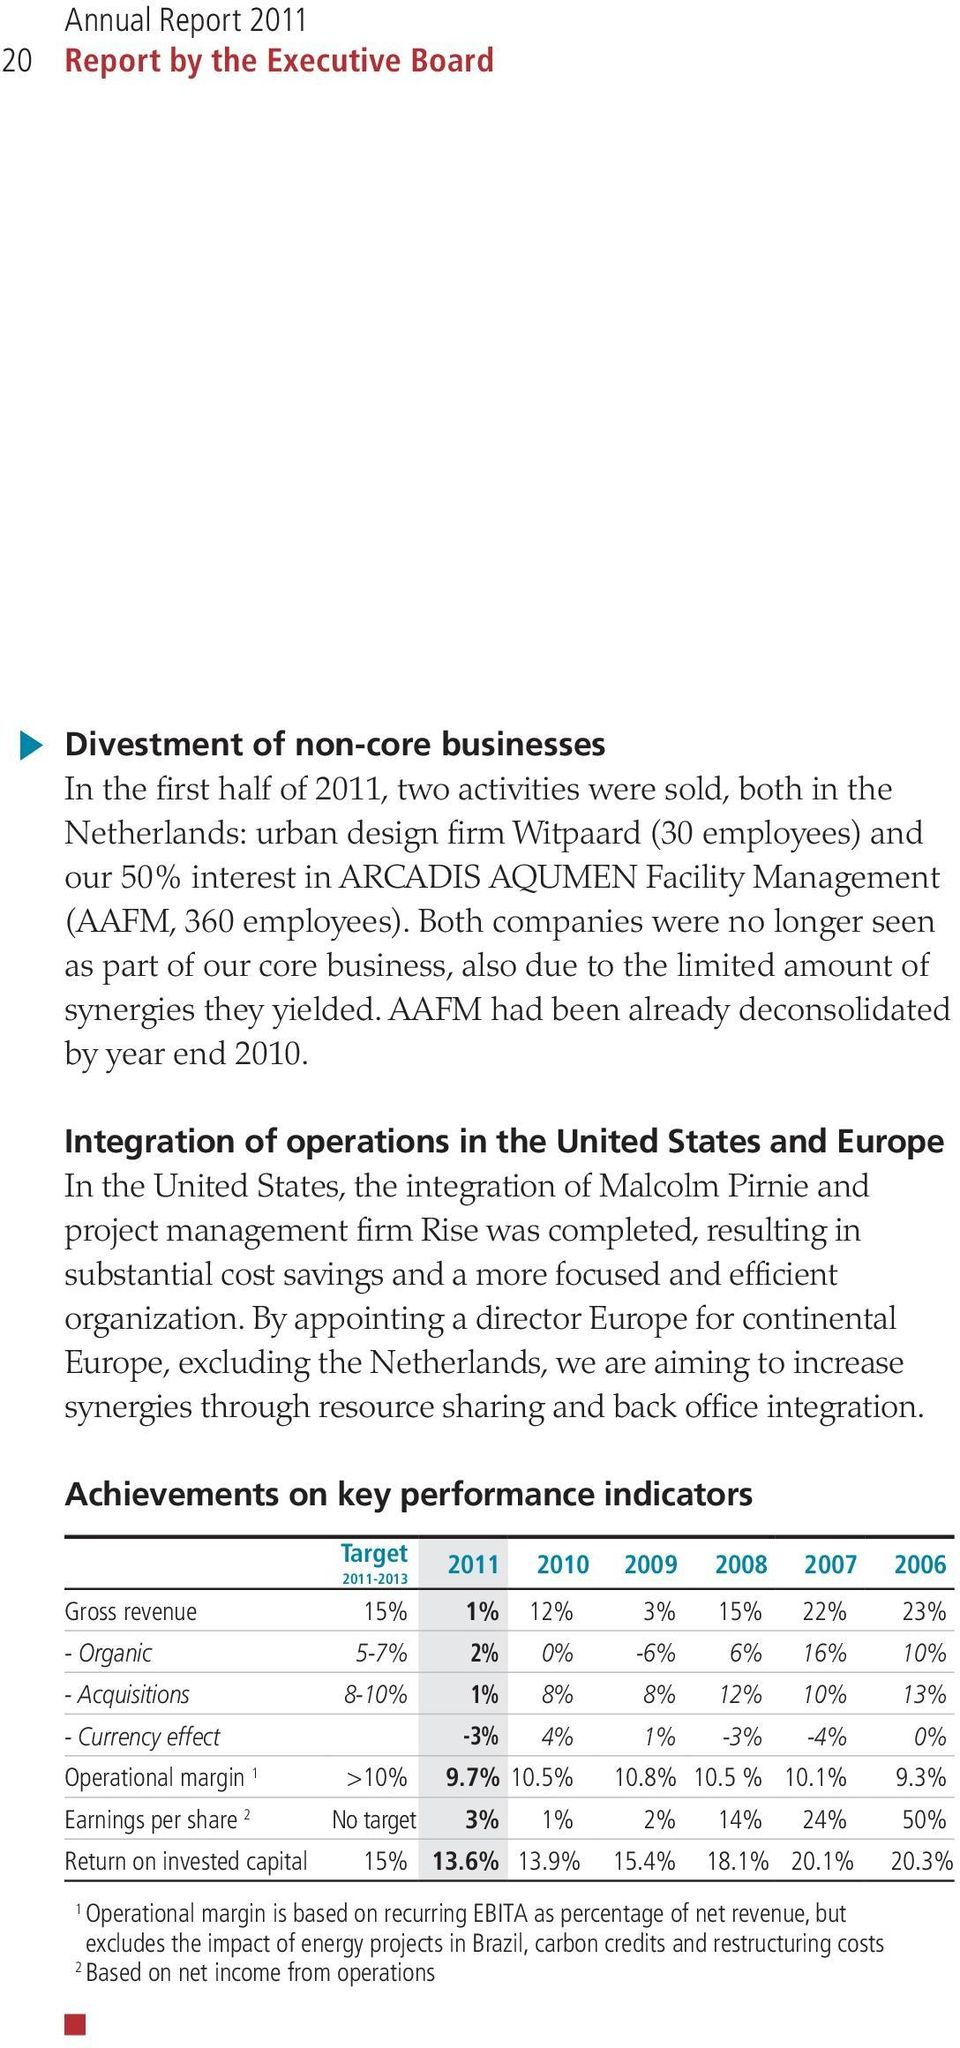 AAFM had been already deconsolidated by year end 2010.